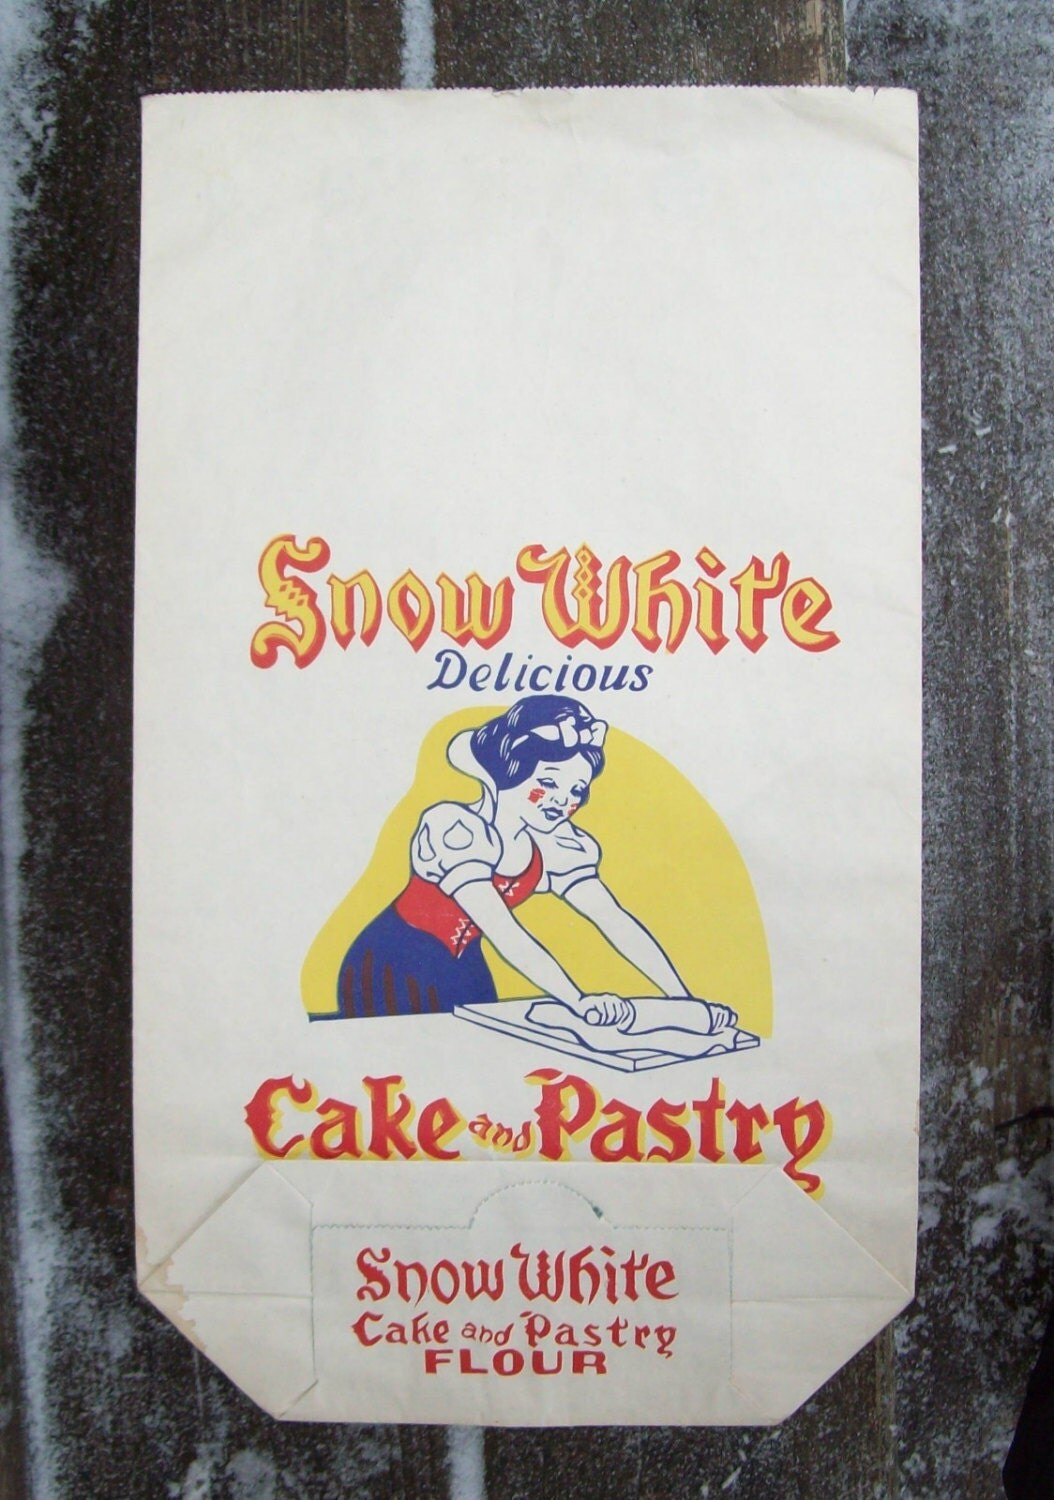 Cake Decorating Corn Flour Bag : Vintage Snow White Cake and Pastry Flour Bag by ...